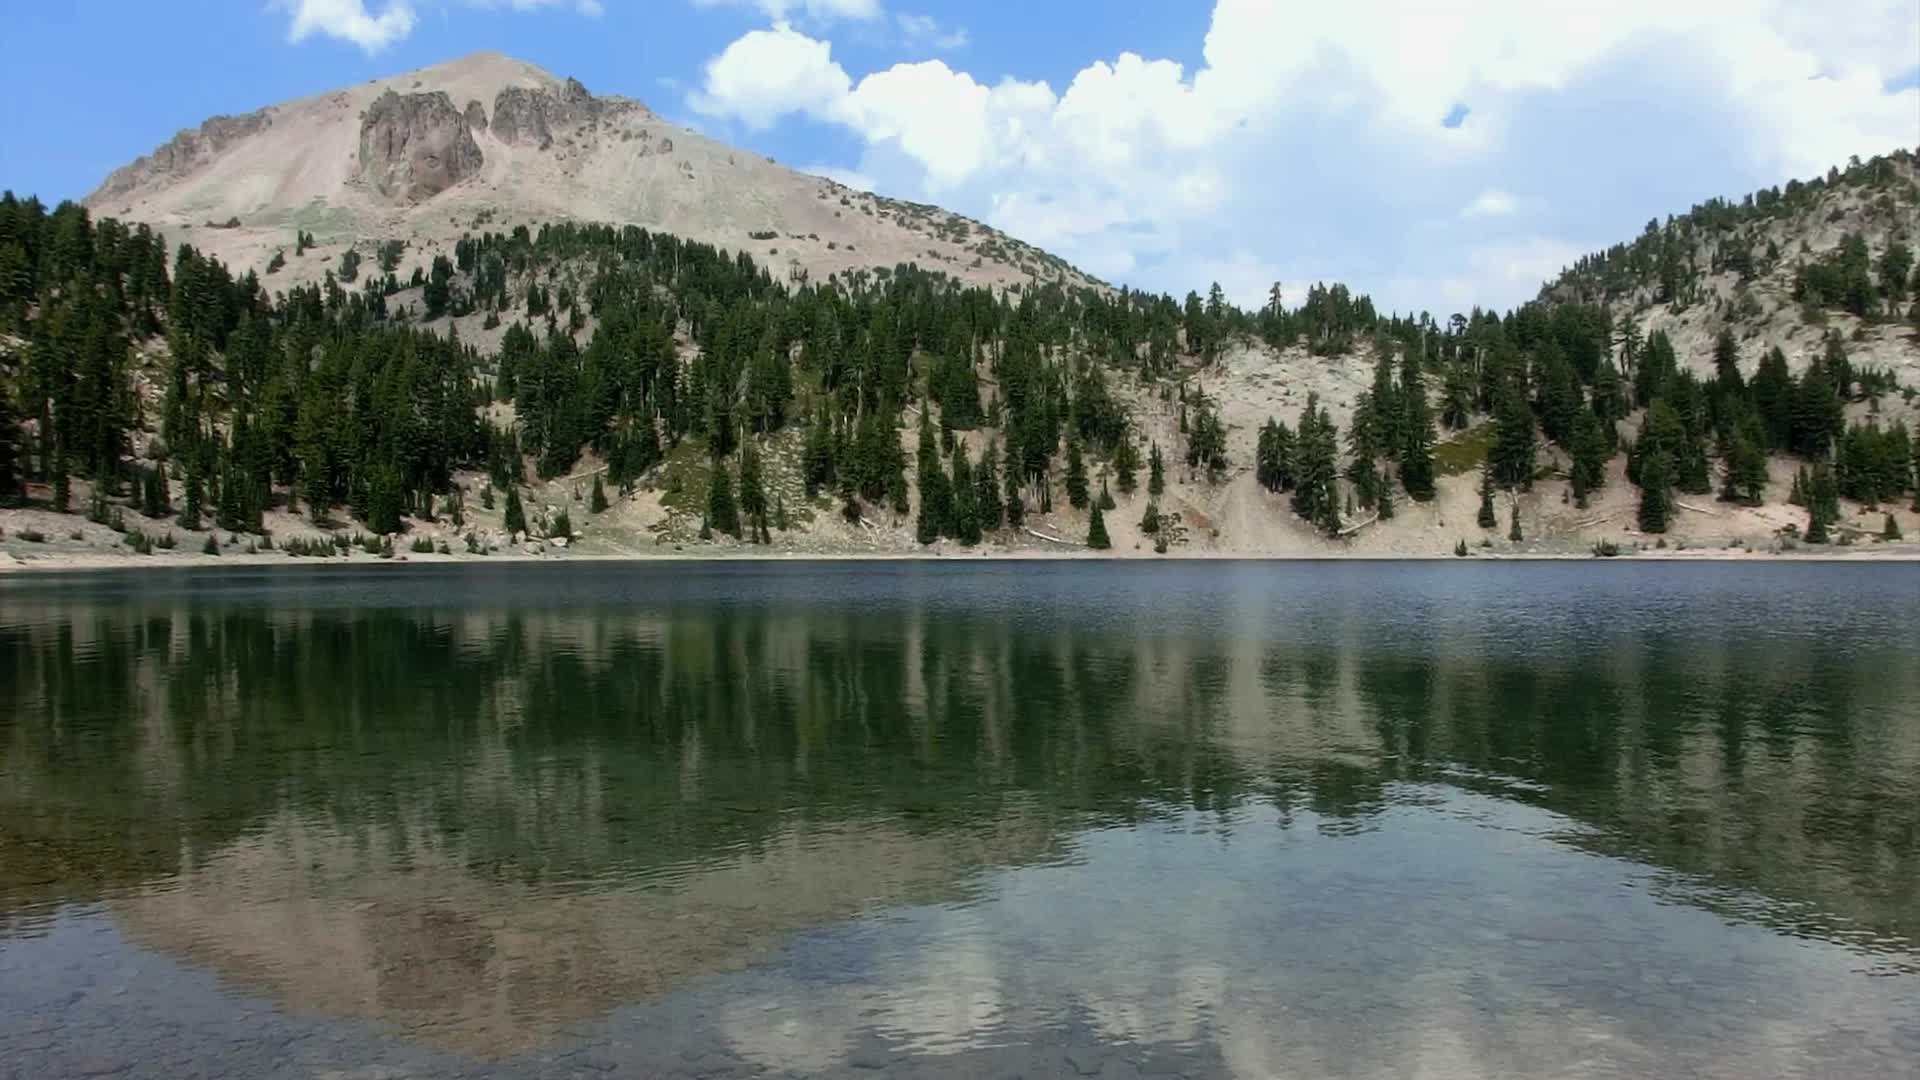 Lassen volcanic national park 30 Lassen Peak and Lake Helen ~ Hi ...